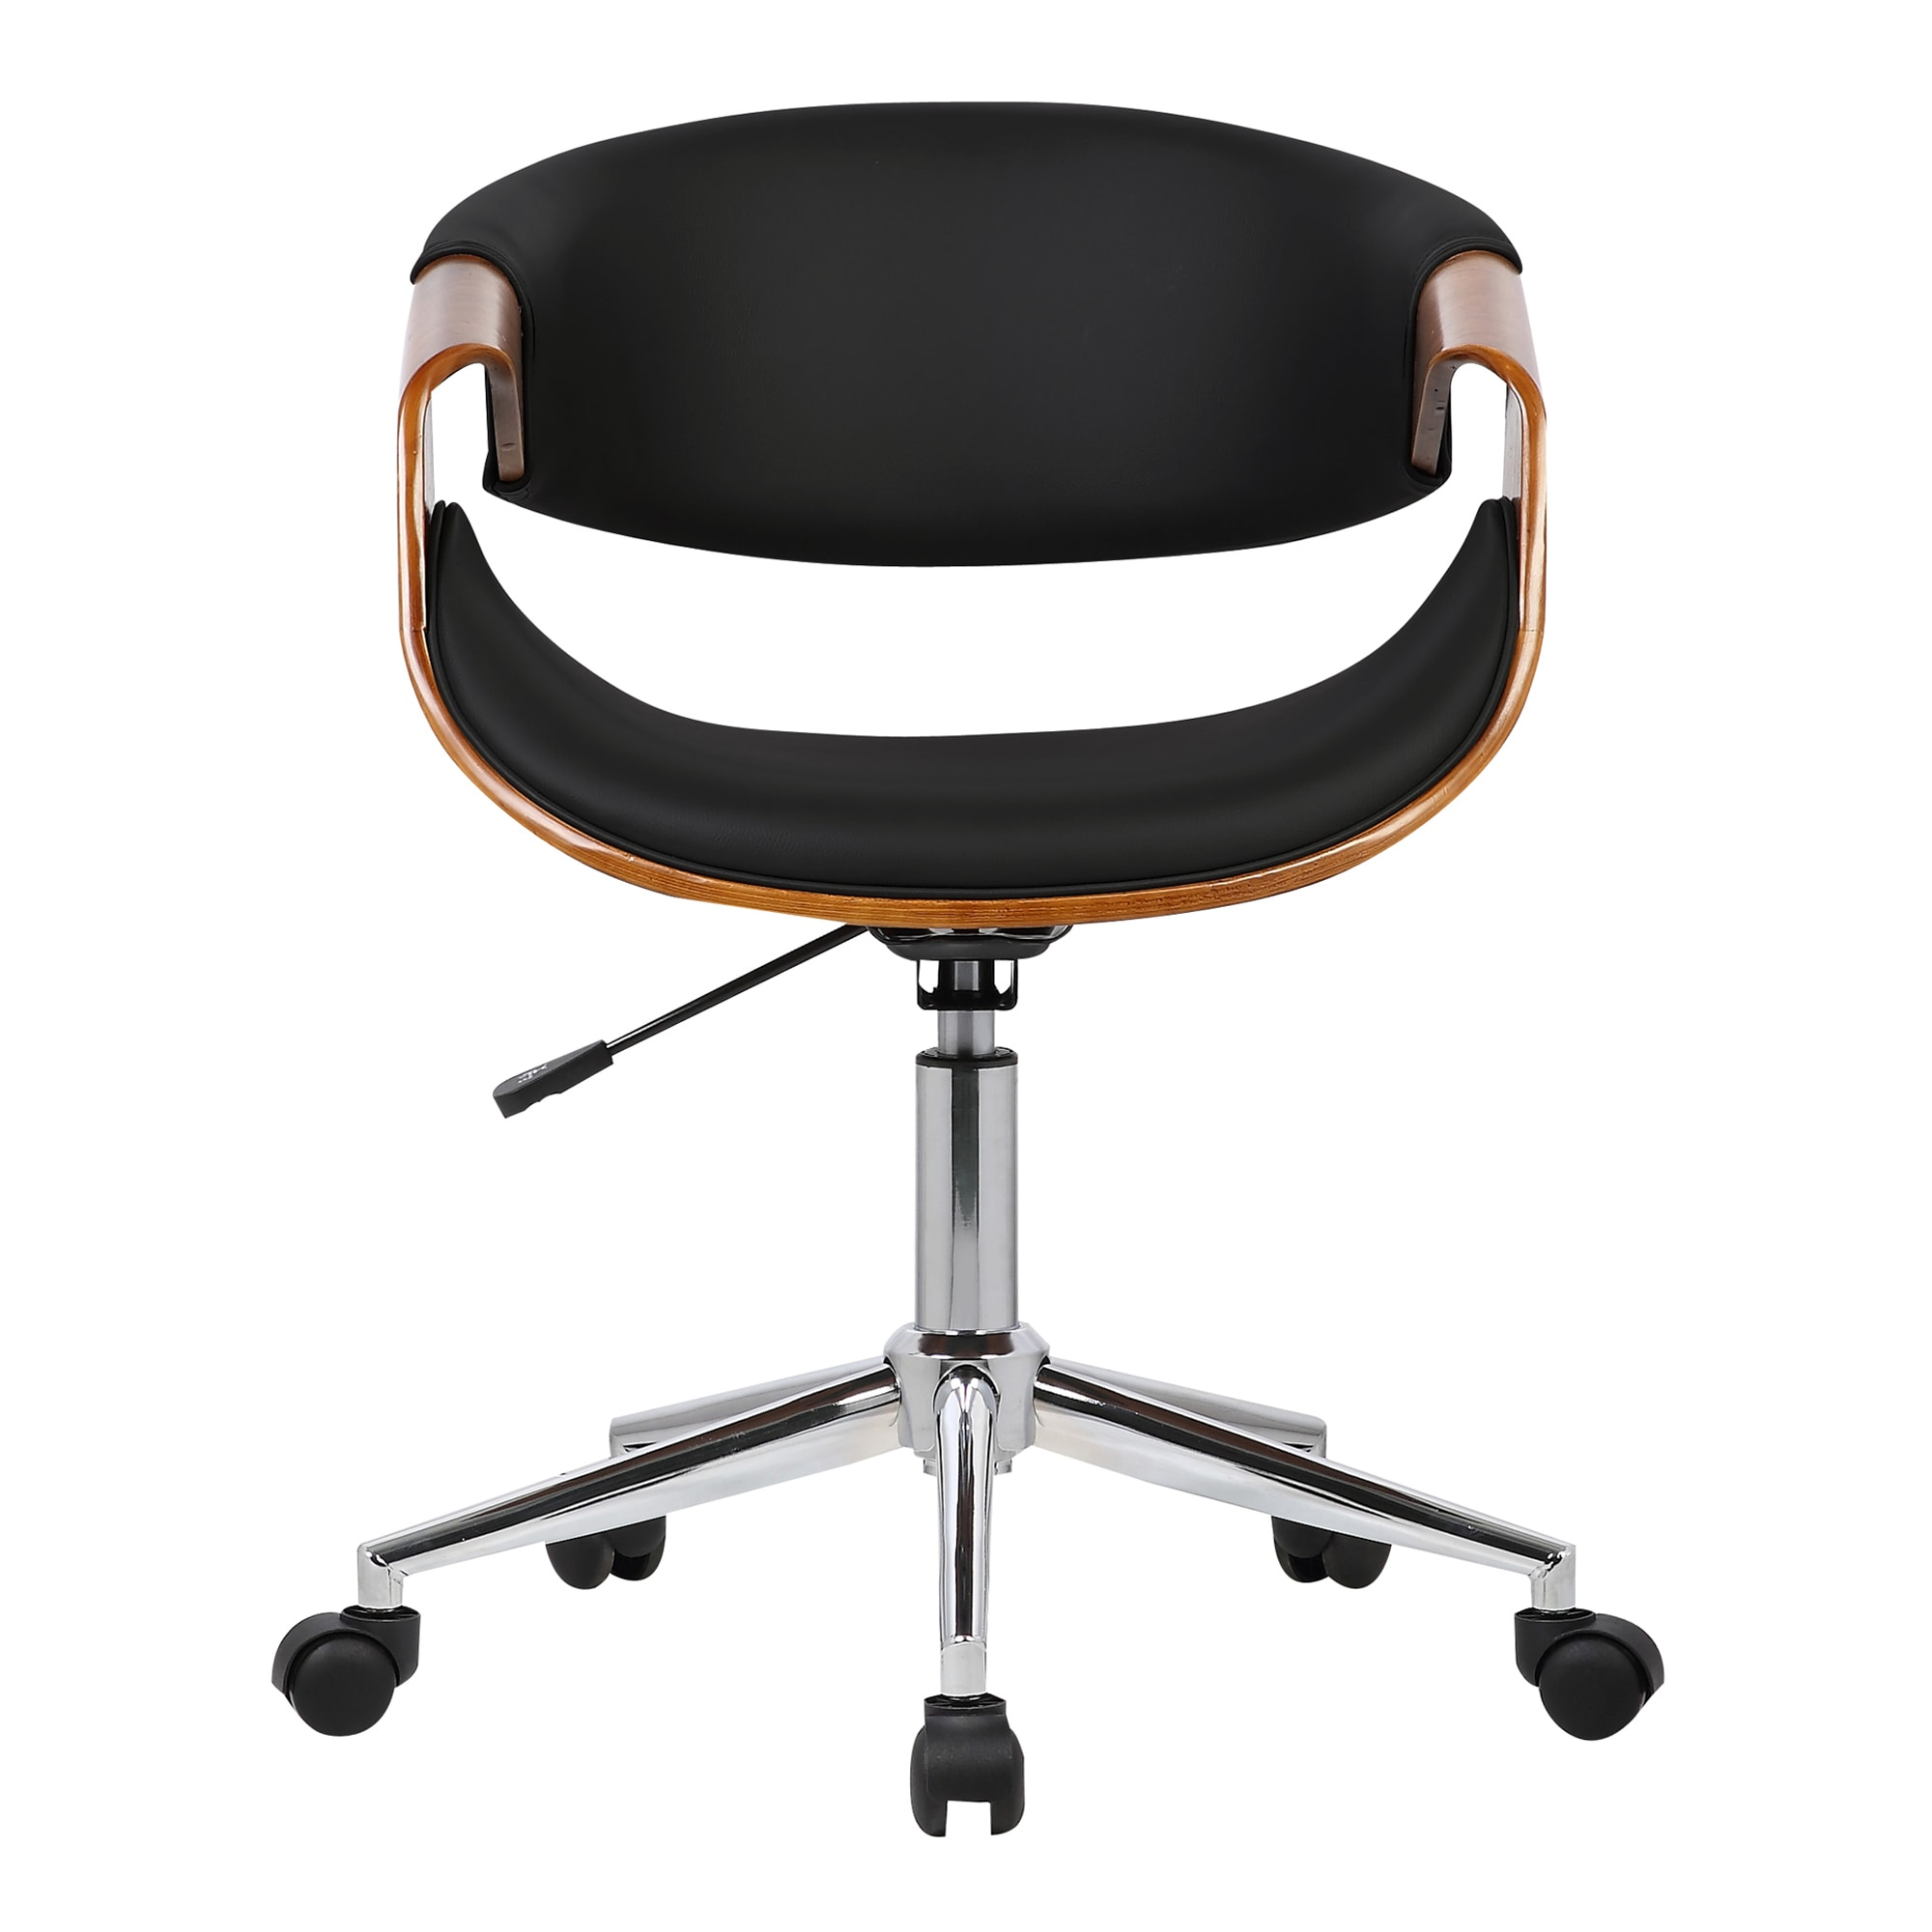 a020730f10 Shop Armen Living Geneva Mid-Century Office Chair in Chrome finish with Black  Faux Leather and Walnut Ven - Free Shipping Today - Overstock - 16326523